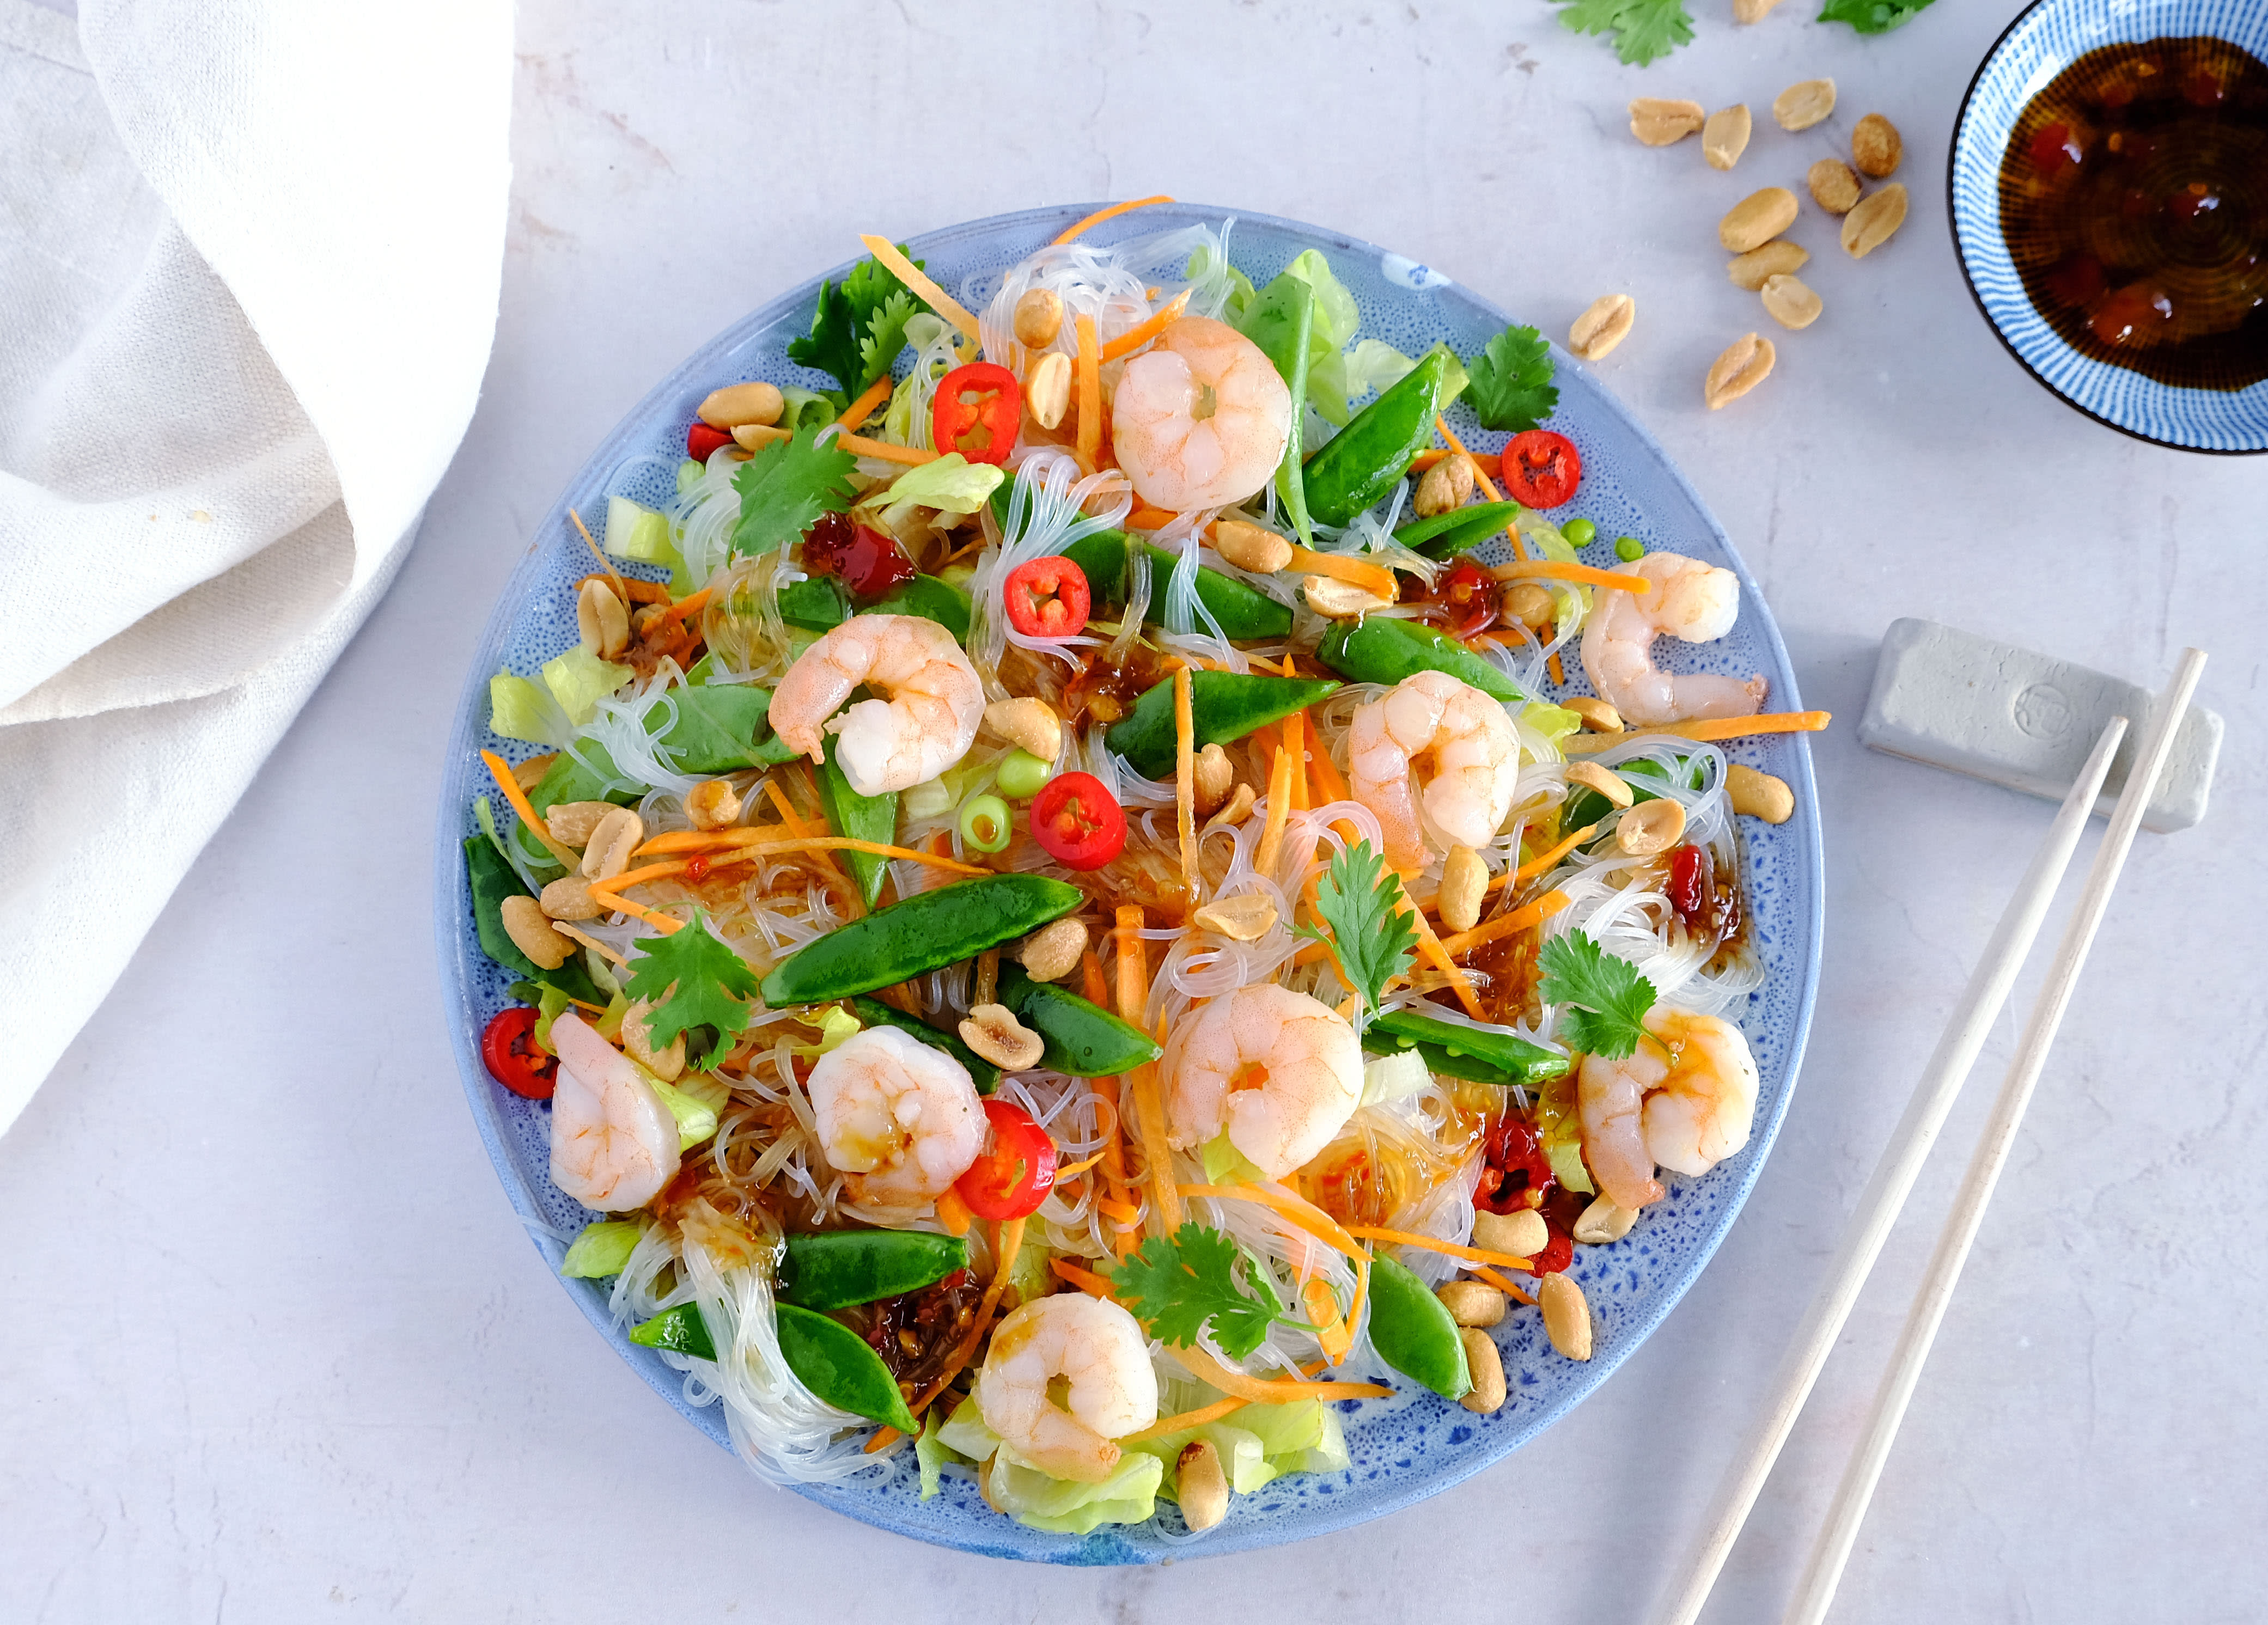 Crunchy Prawn and Glass Noodle Salad with Peanuts